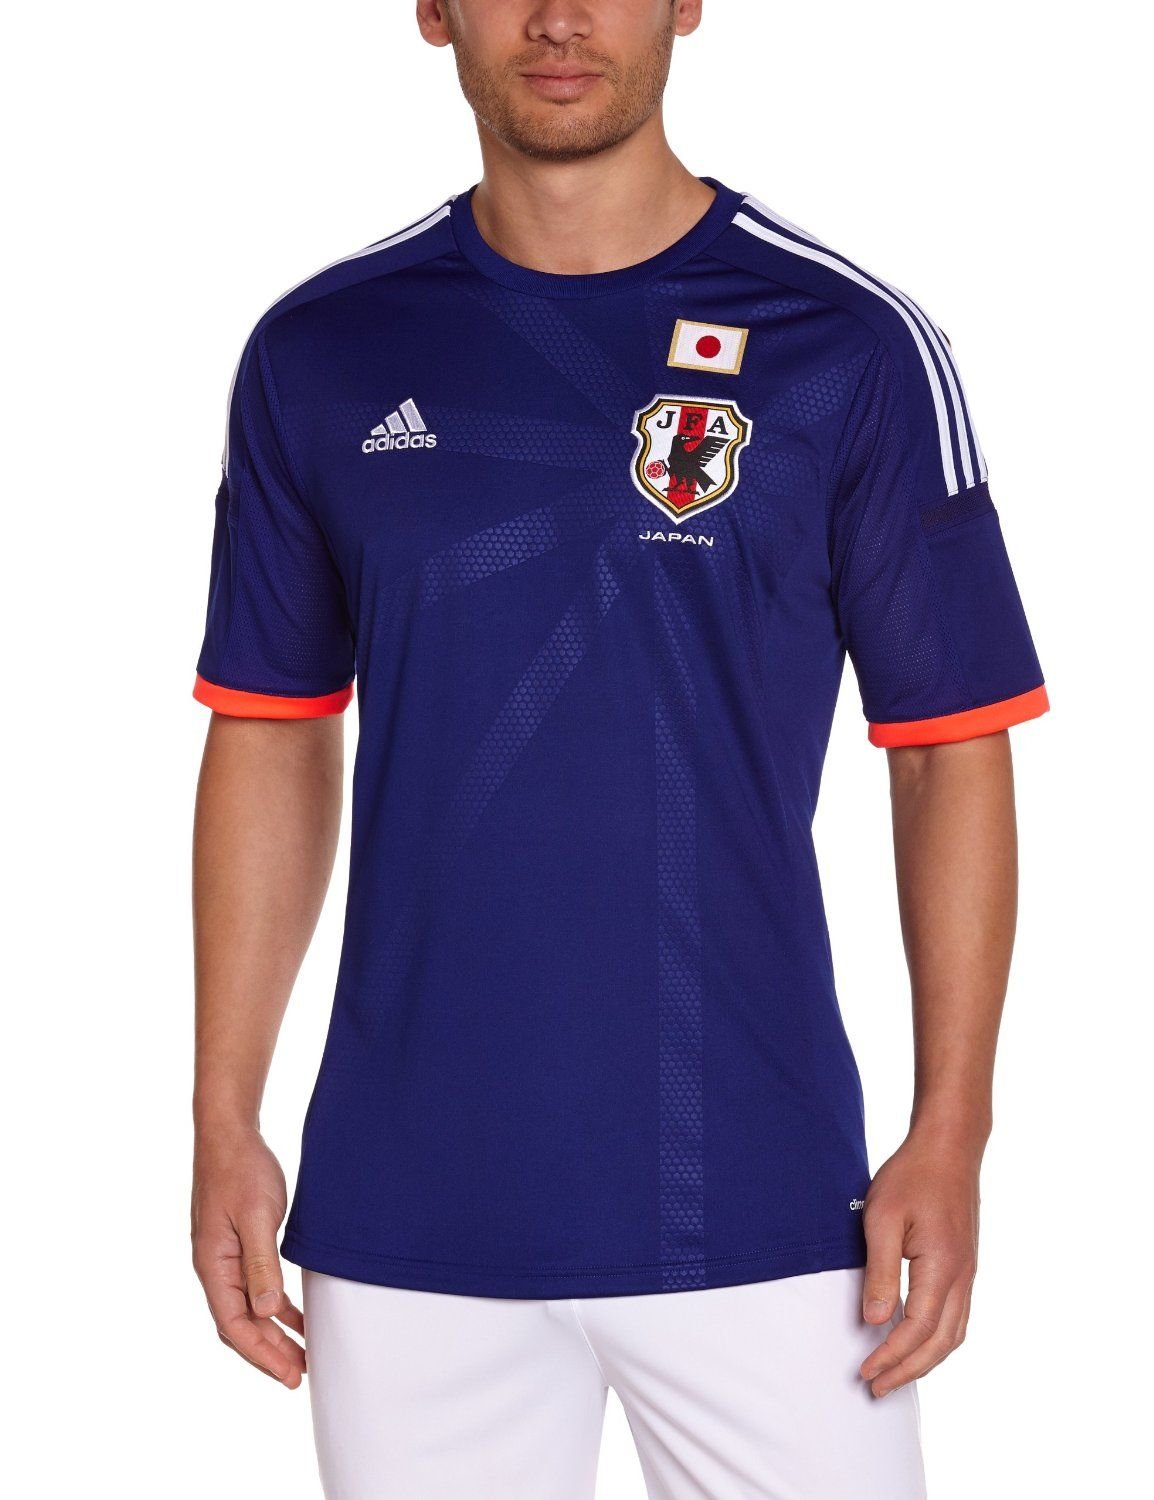 finest selection 19423 ceed3 Official Adidas Japan World Cup 2014 Home Jersey | 2014 ...